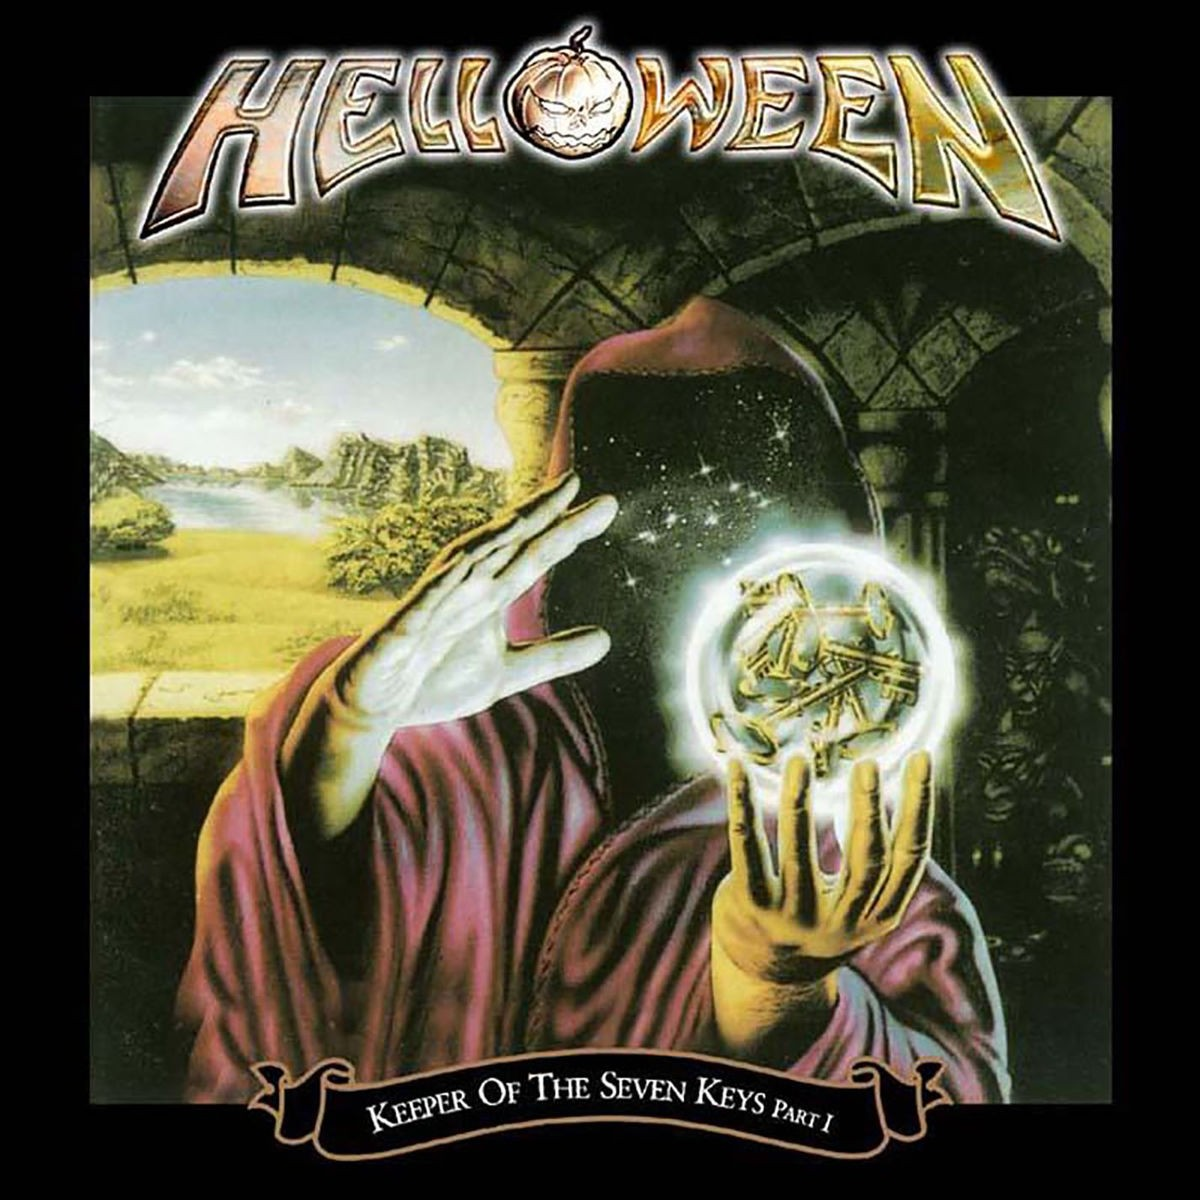 Helloween - Keeper of the Seven Keys, Pt. I VINYL - 541493992281